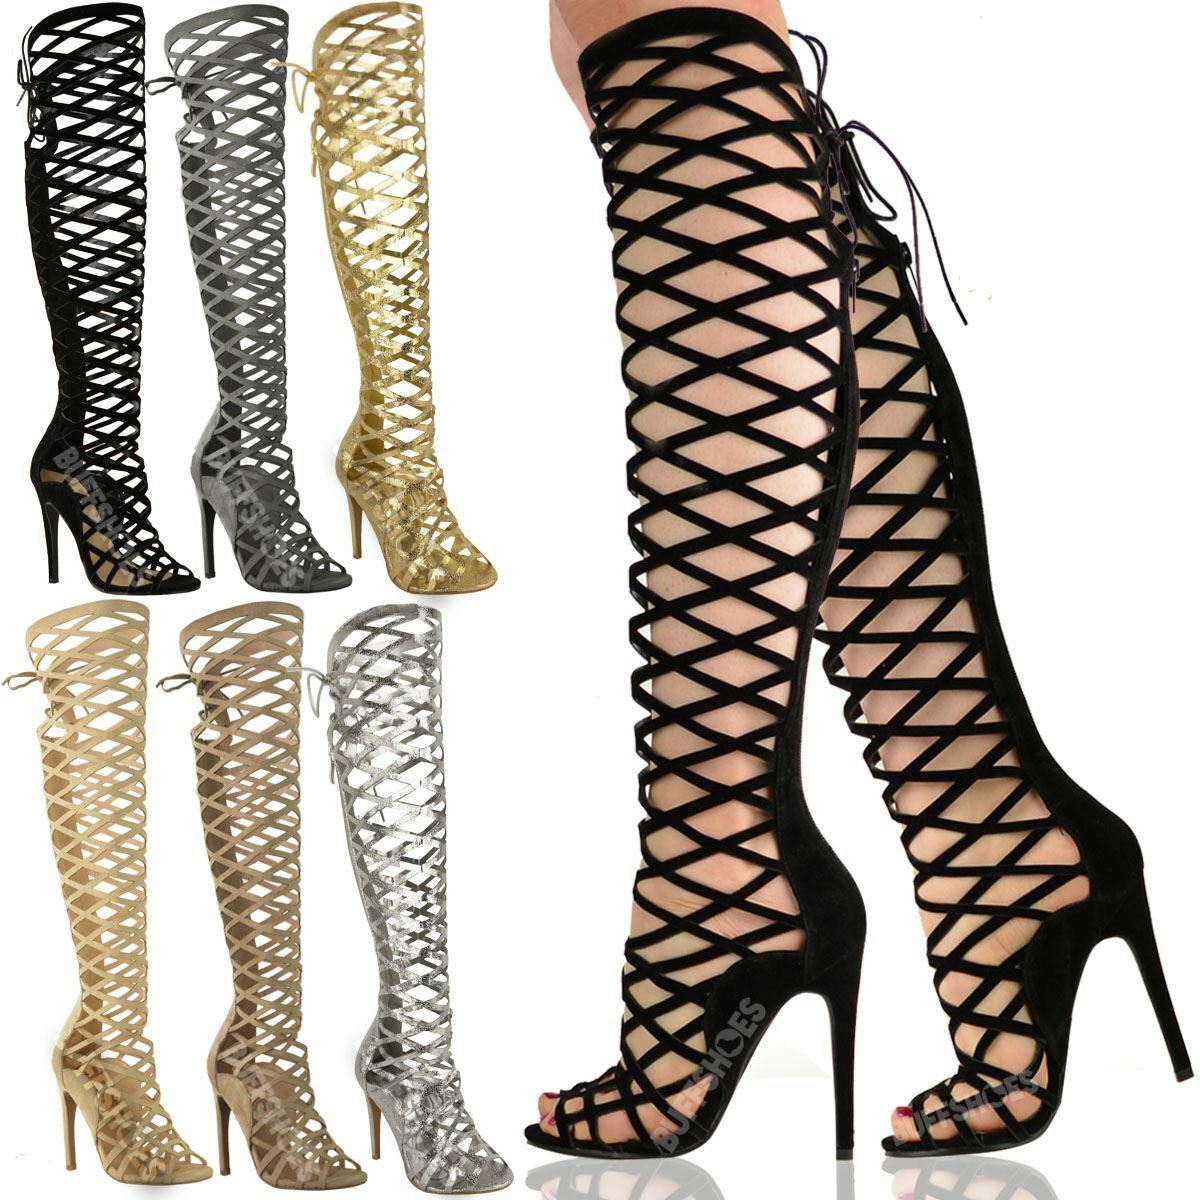 LADIES Damenschuhe CUT OUT LACE KNEE HIGH HEEL BOOTS GLADIATOR SANDALS STRAPPY SIZE